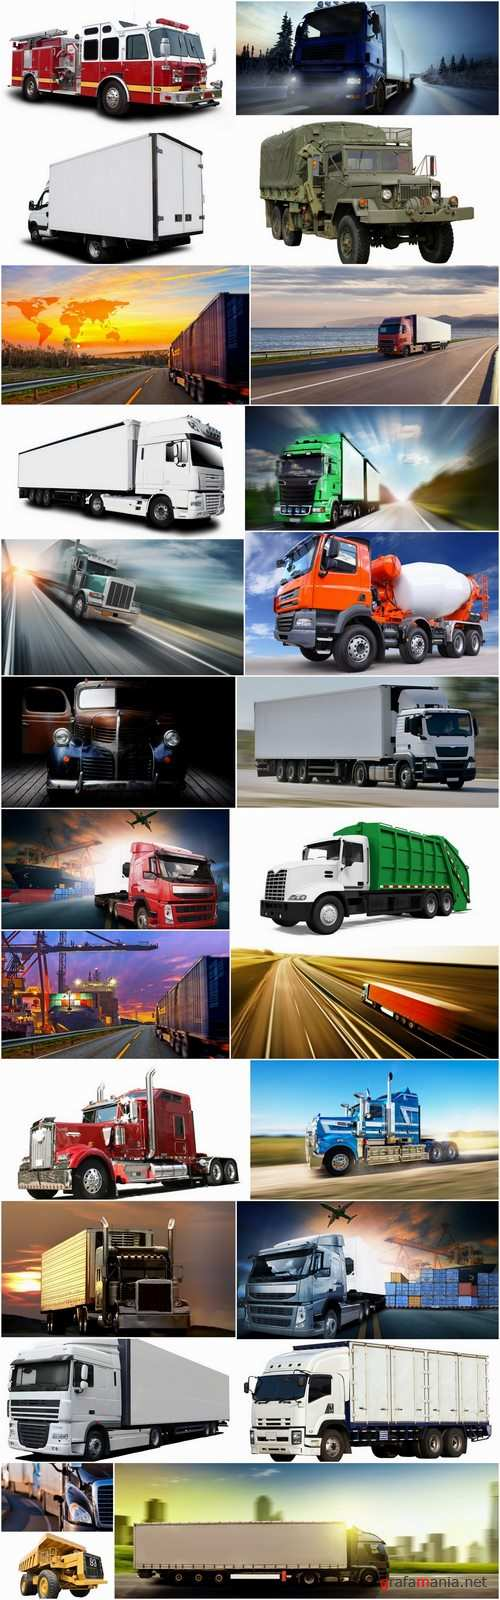 Lorry lengthy trailer truck refrigerated trucking and construction 25 HQ Jpeg